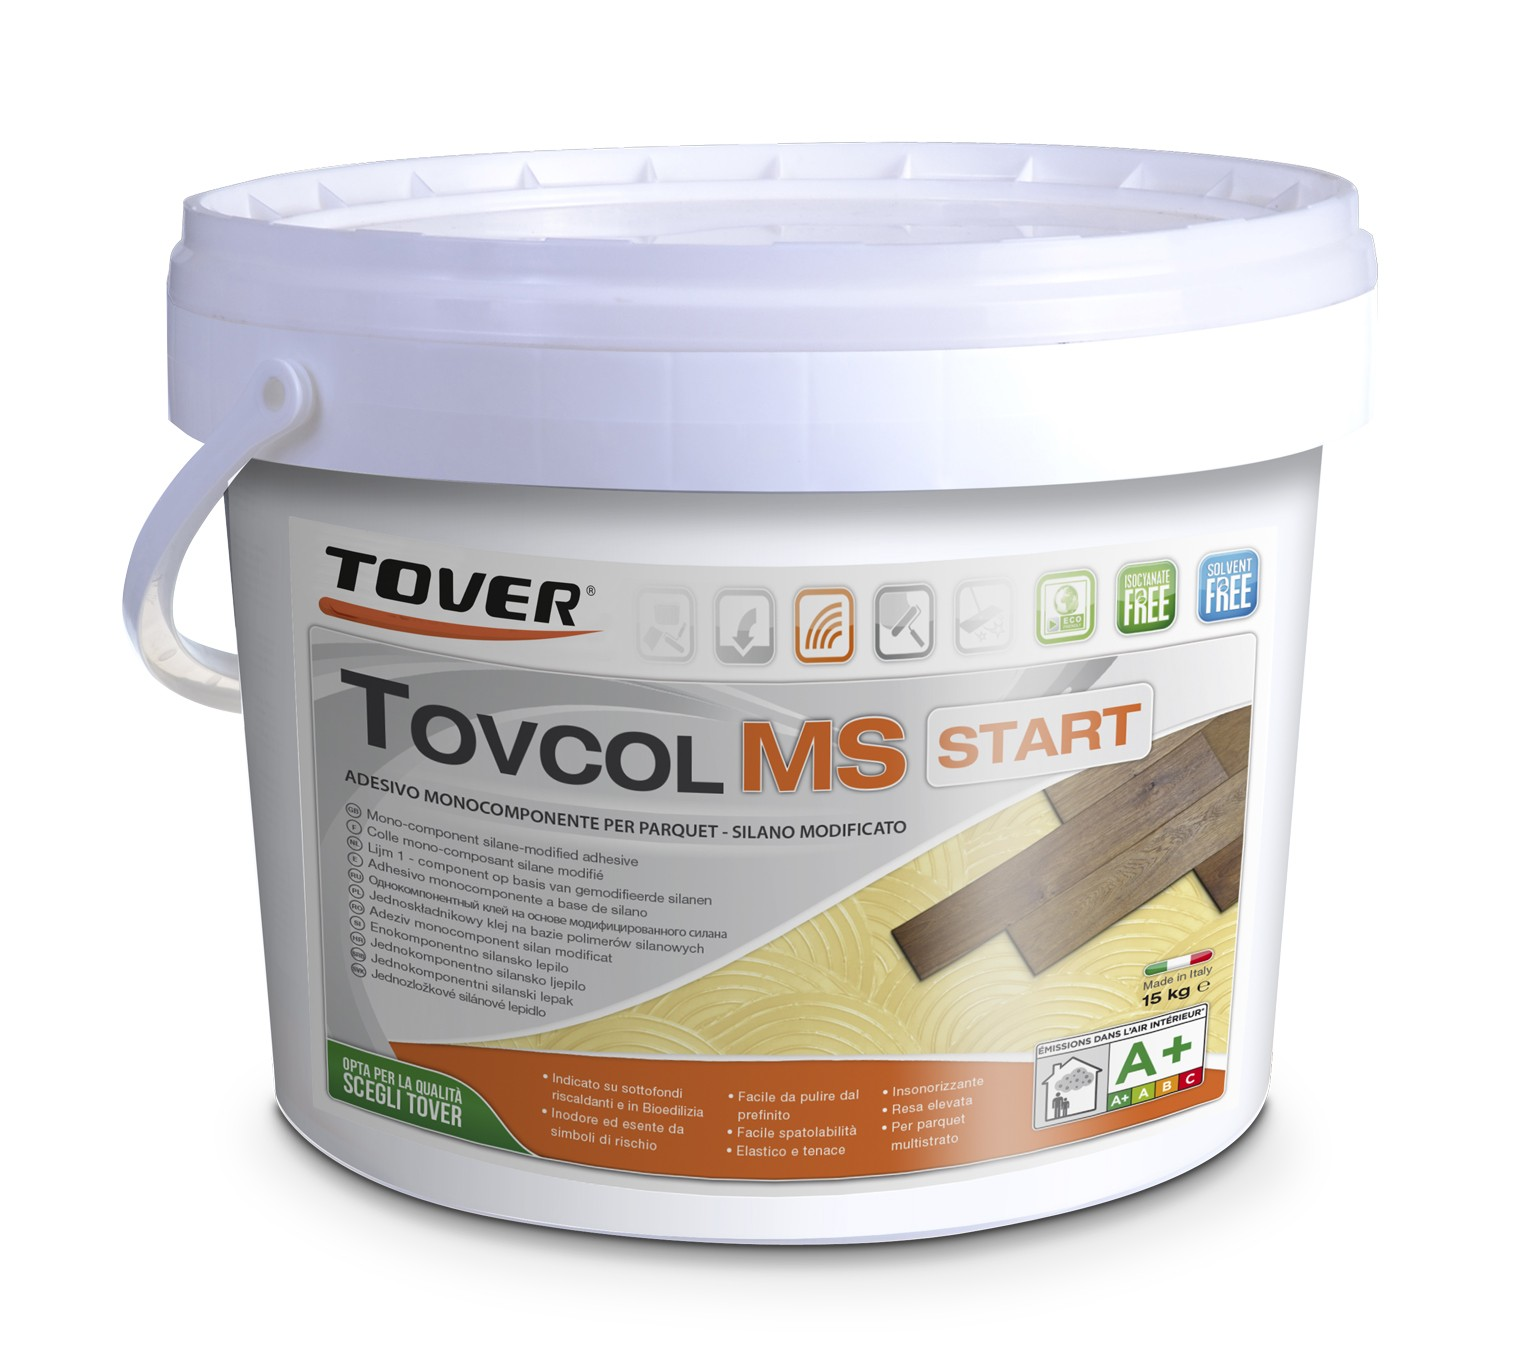 Tover  Mono-Component Silane Modified Adhesive Tovcol MS Start Polymer 15kg